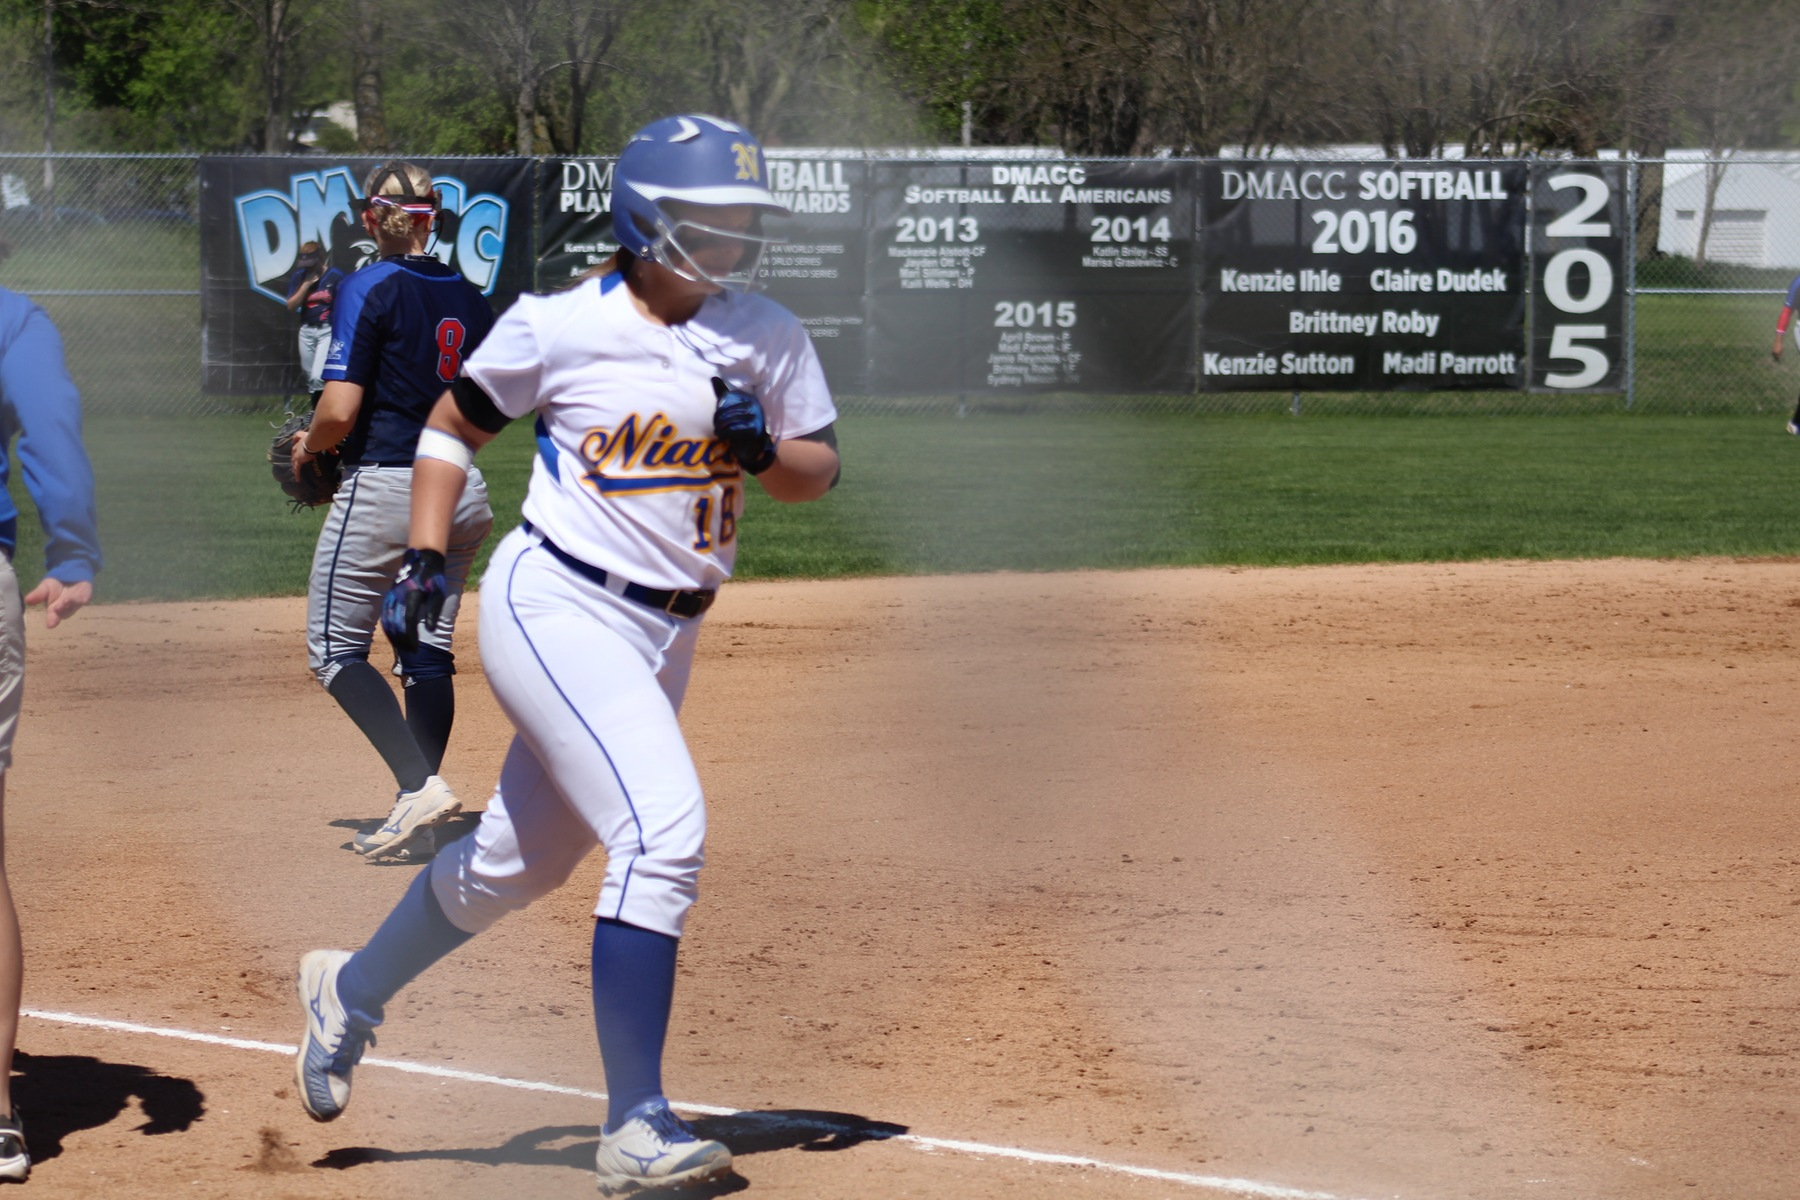 NIACC's Shelby Low rounds third base after hitting a home run in the fifth inning on Tuesday against DMACC.